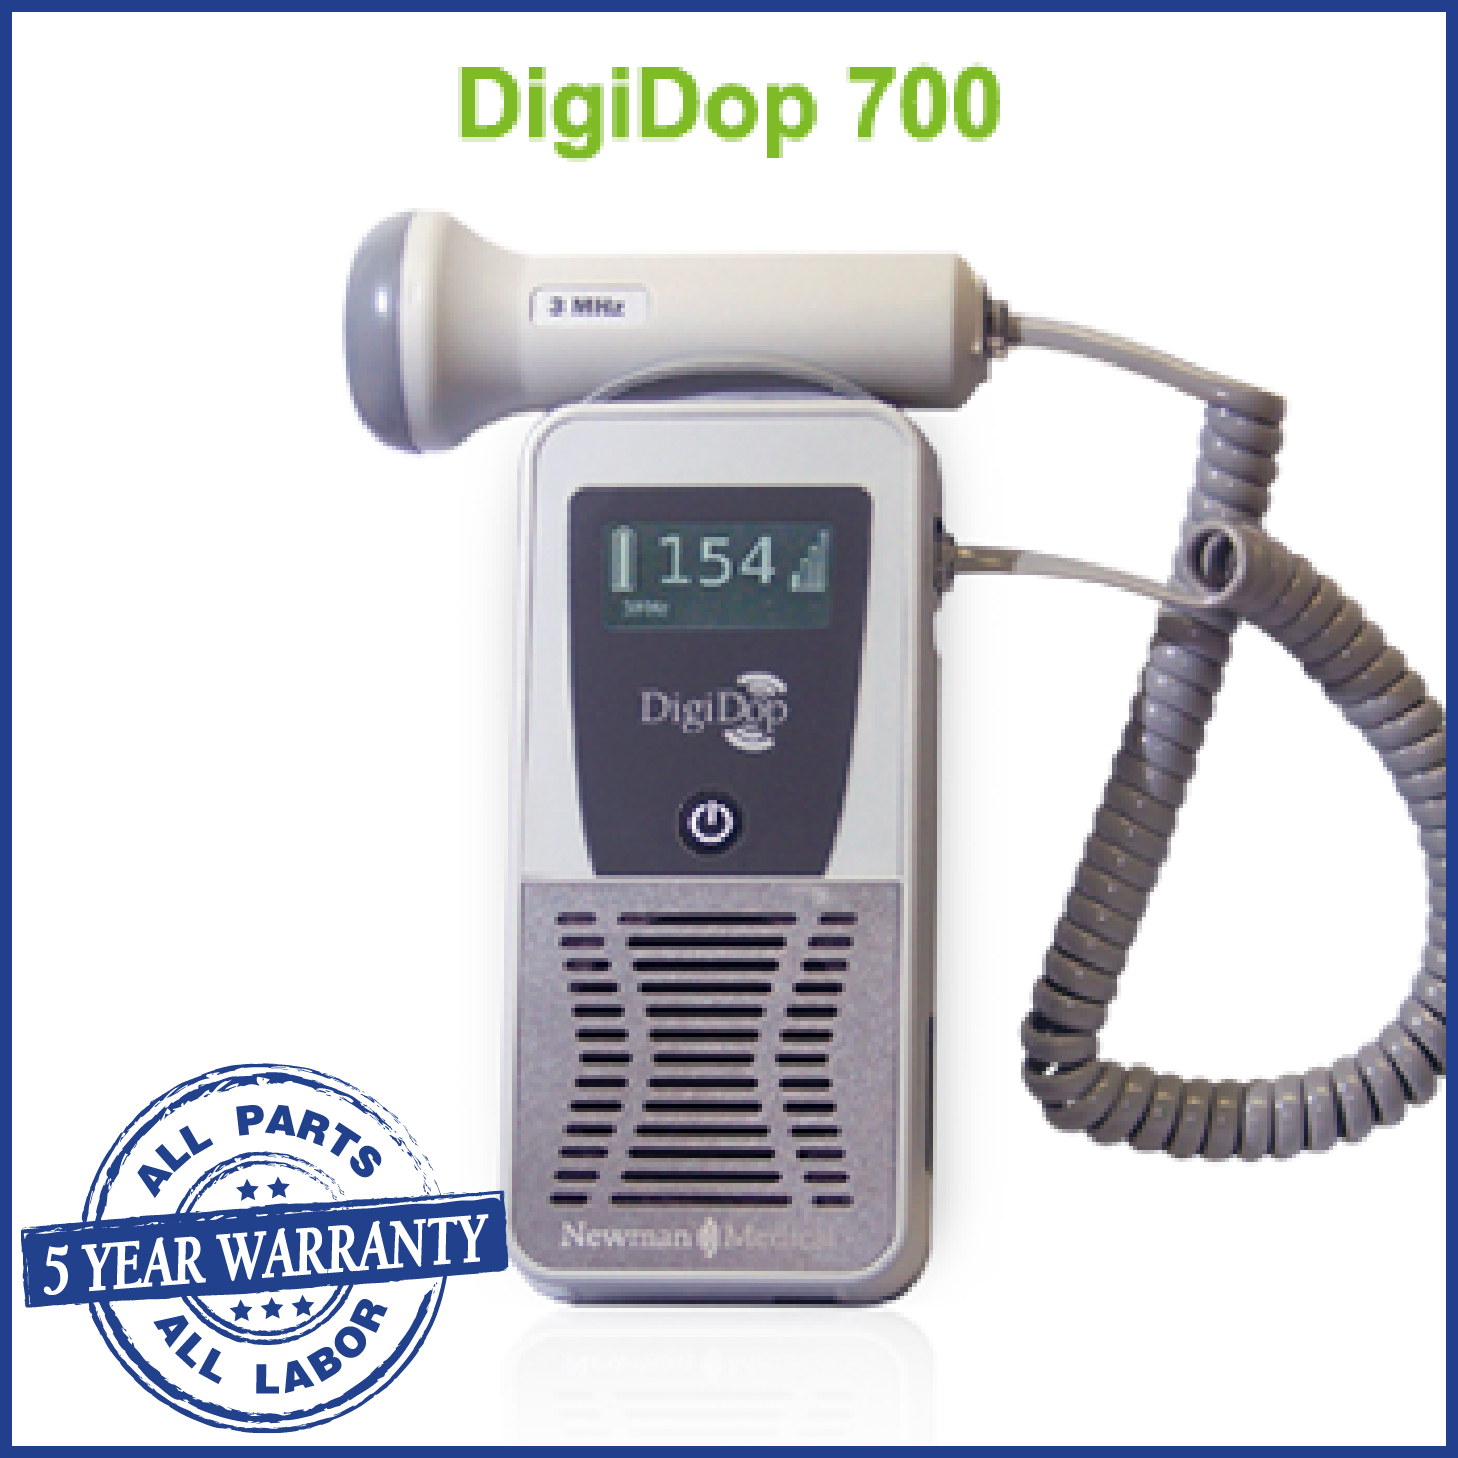 DD-700 Non-display non-rechargeable